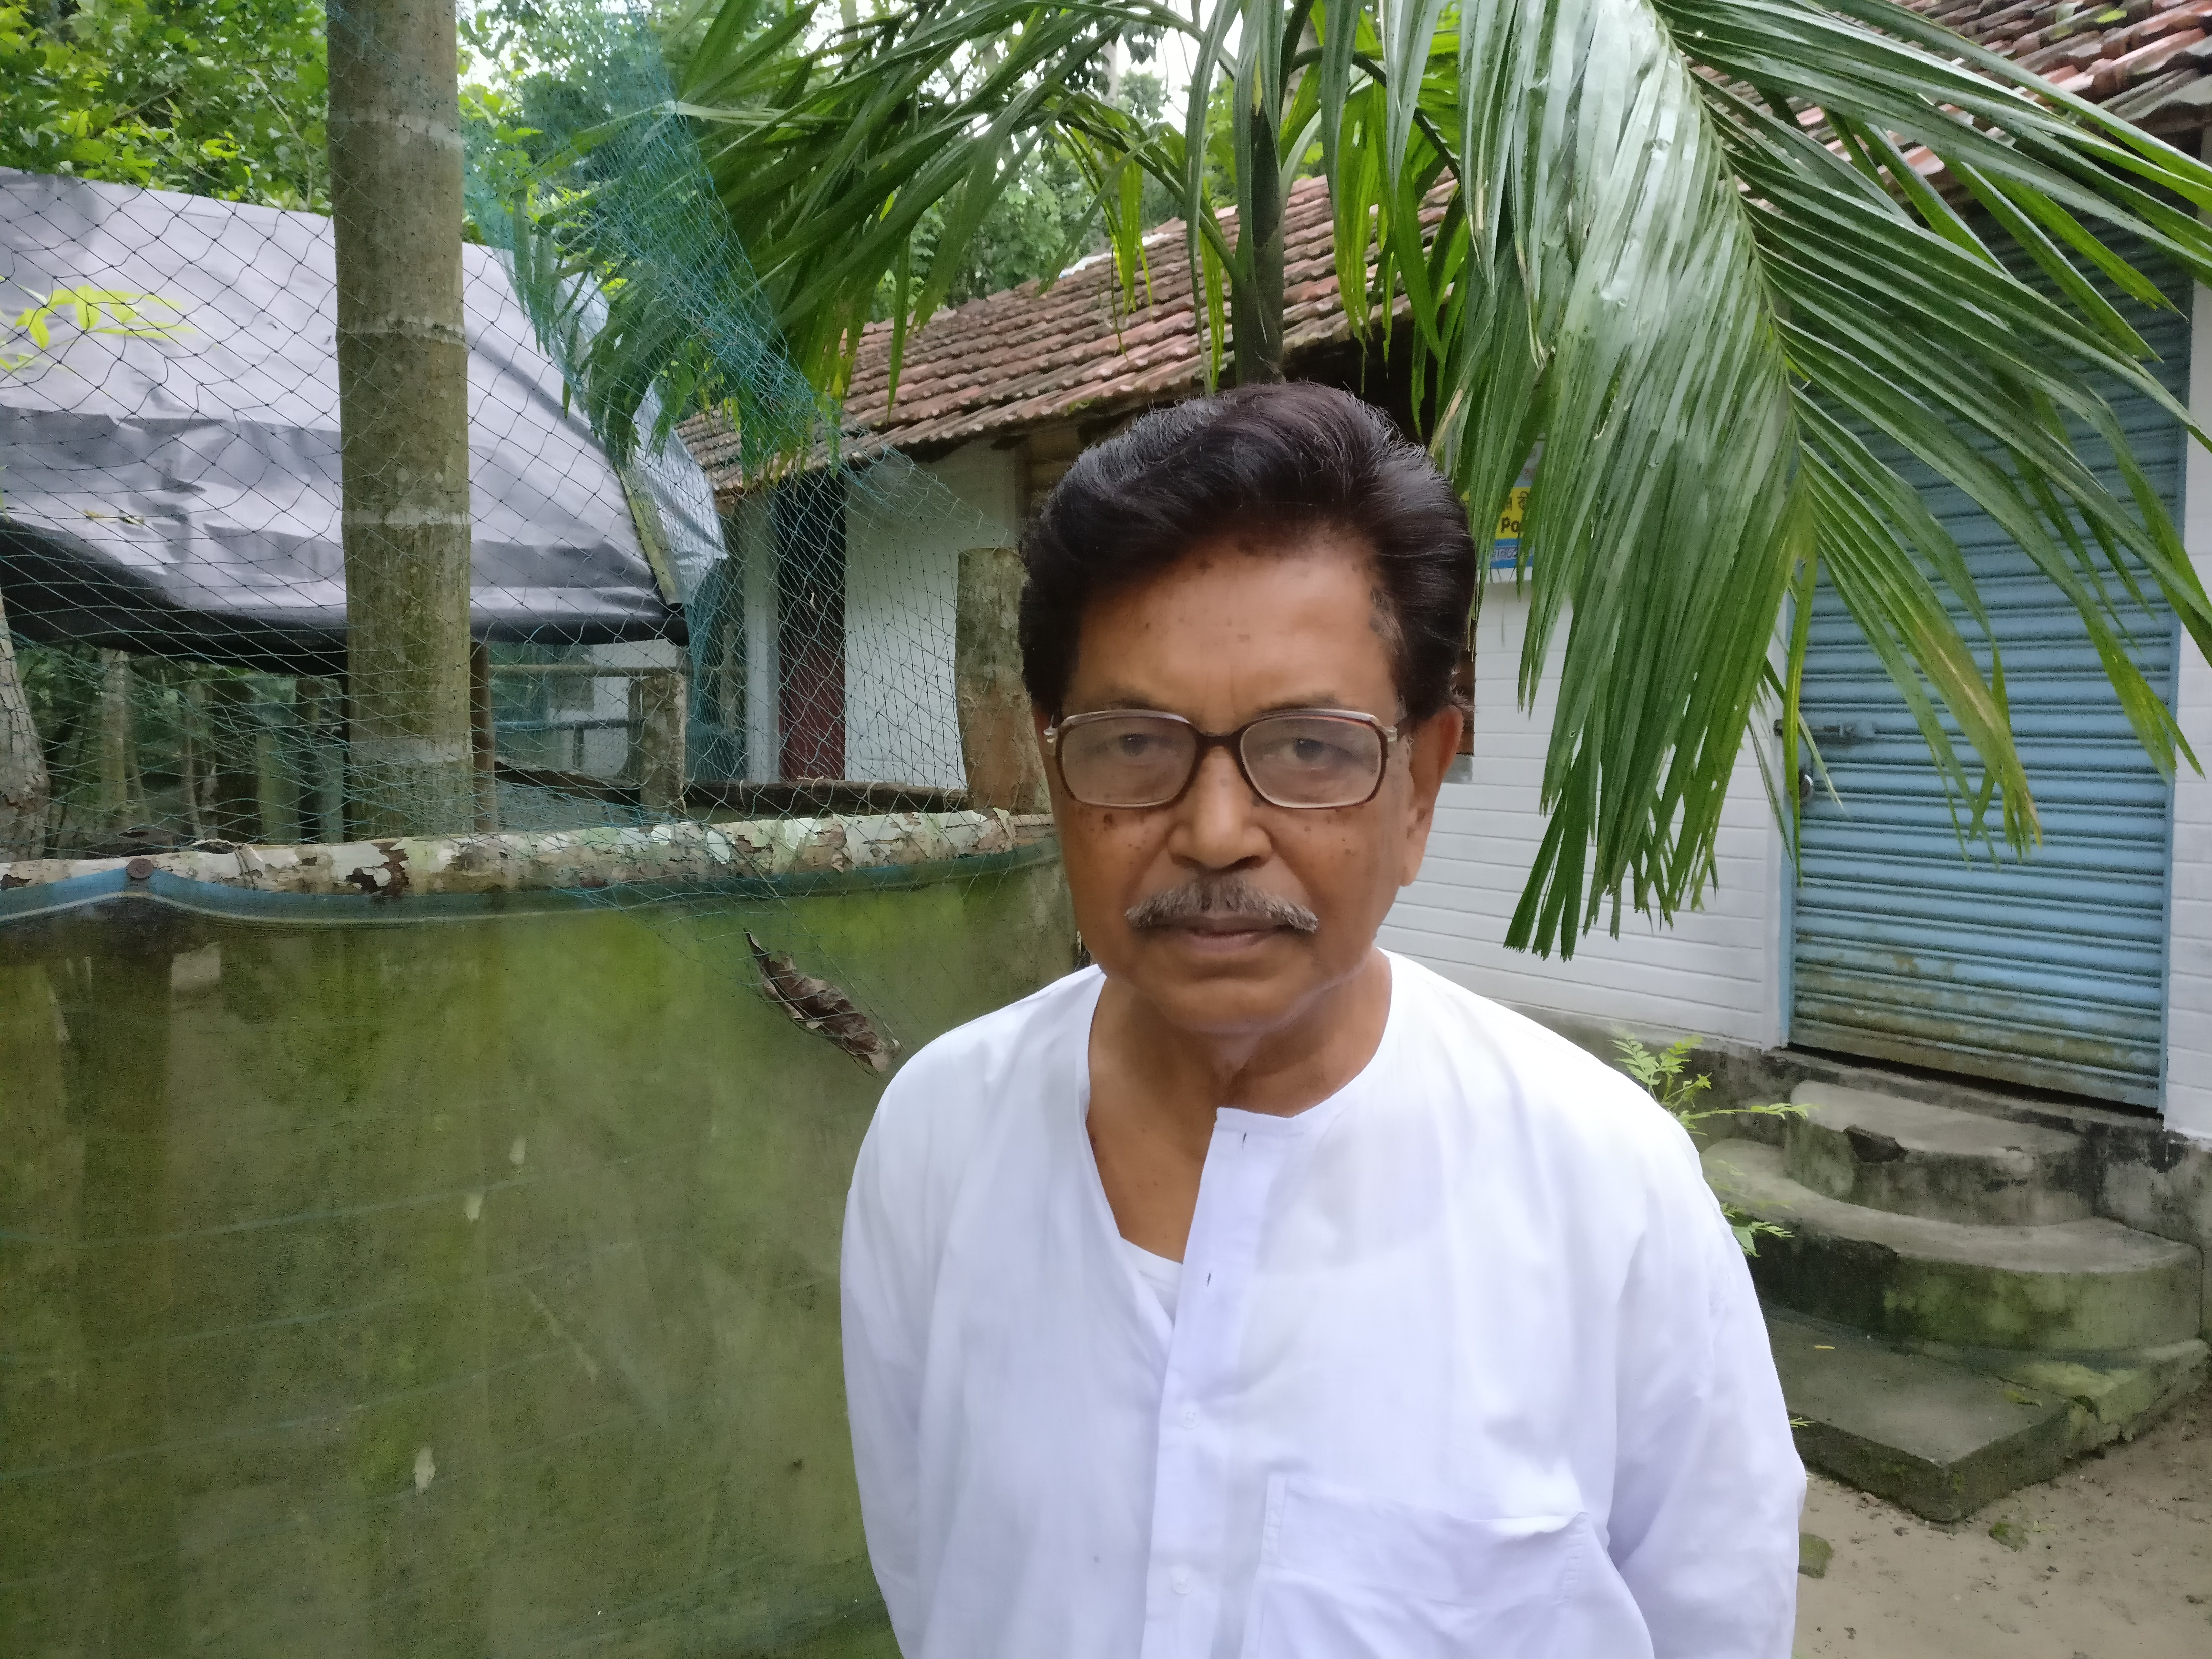 Nanda Dulal Mohanto, president of the Matua Mahasangha is seeing increasing support for the BJP in the Matua community.